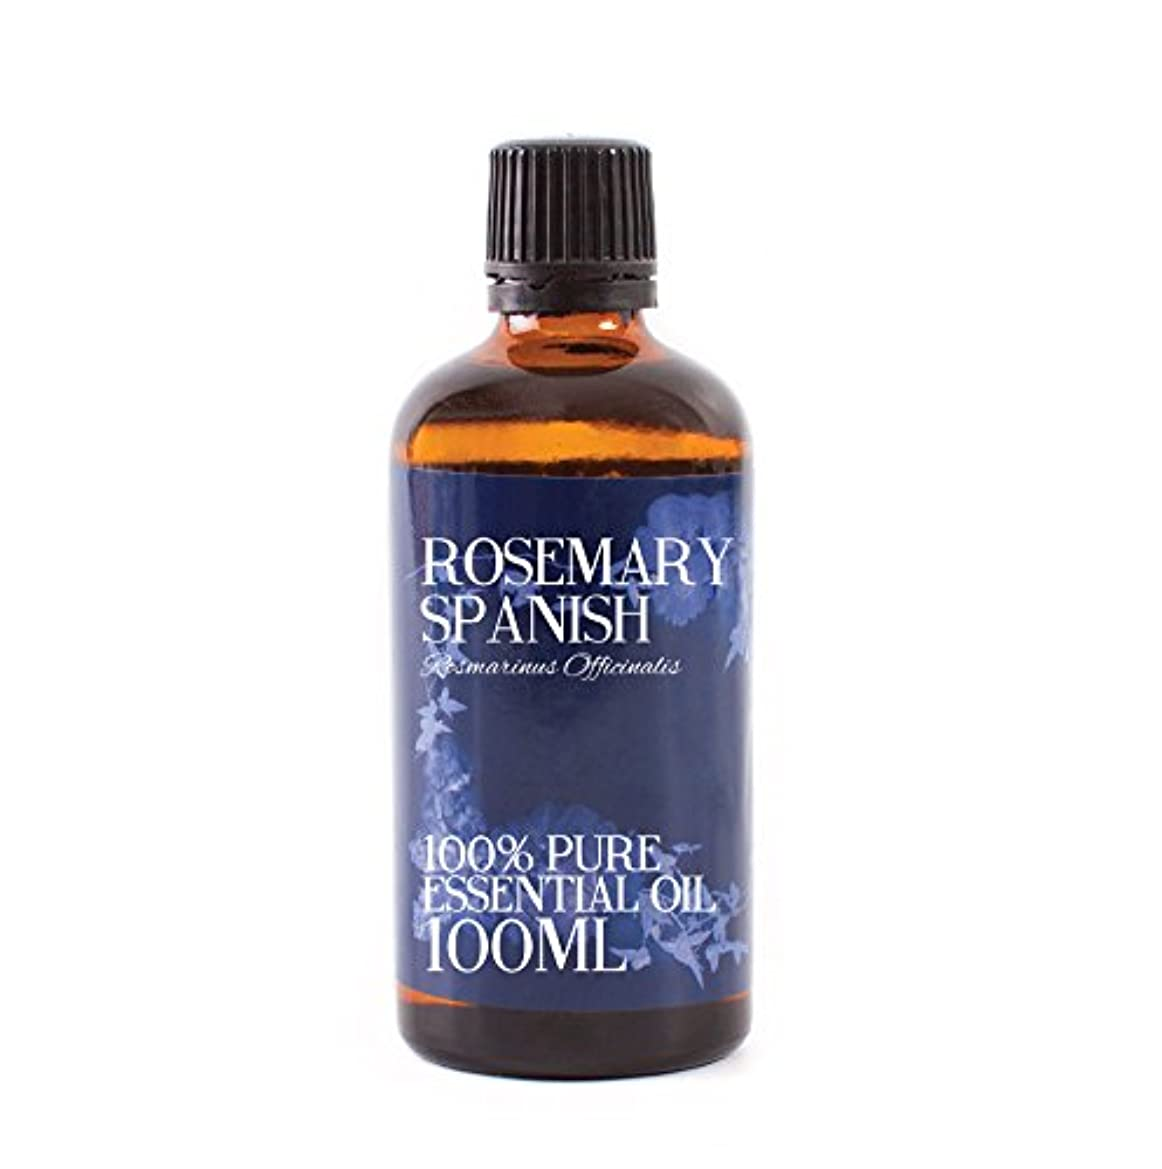 Mystic Moments | Rosemary Spanish Essential Oil - 100ml - 100% Pure